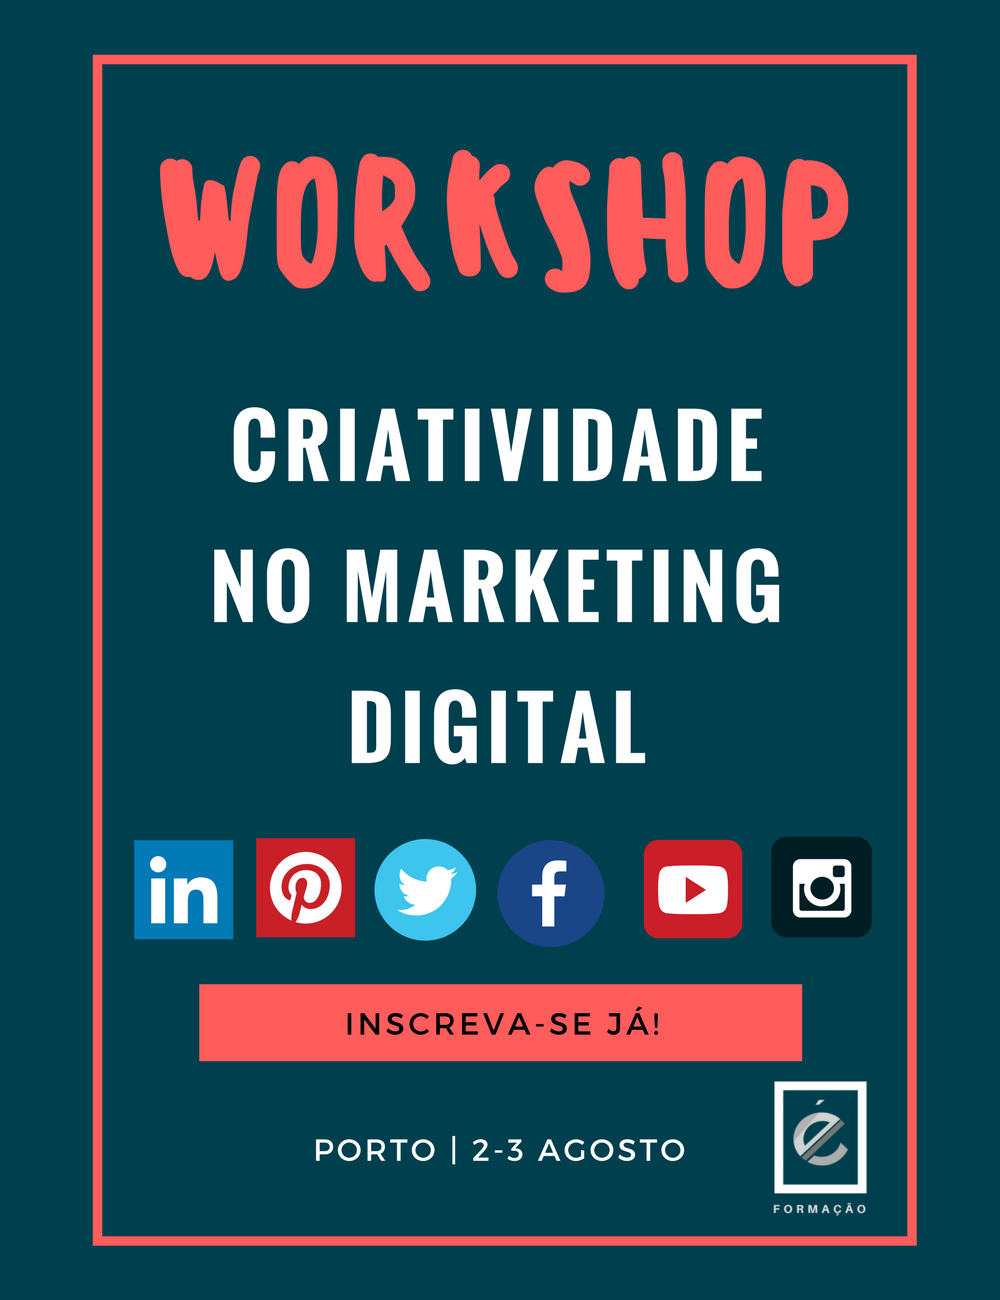 criatividade no marketing digital